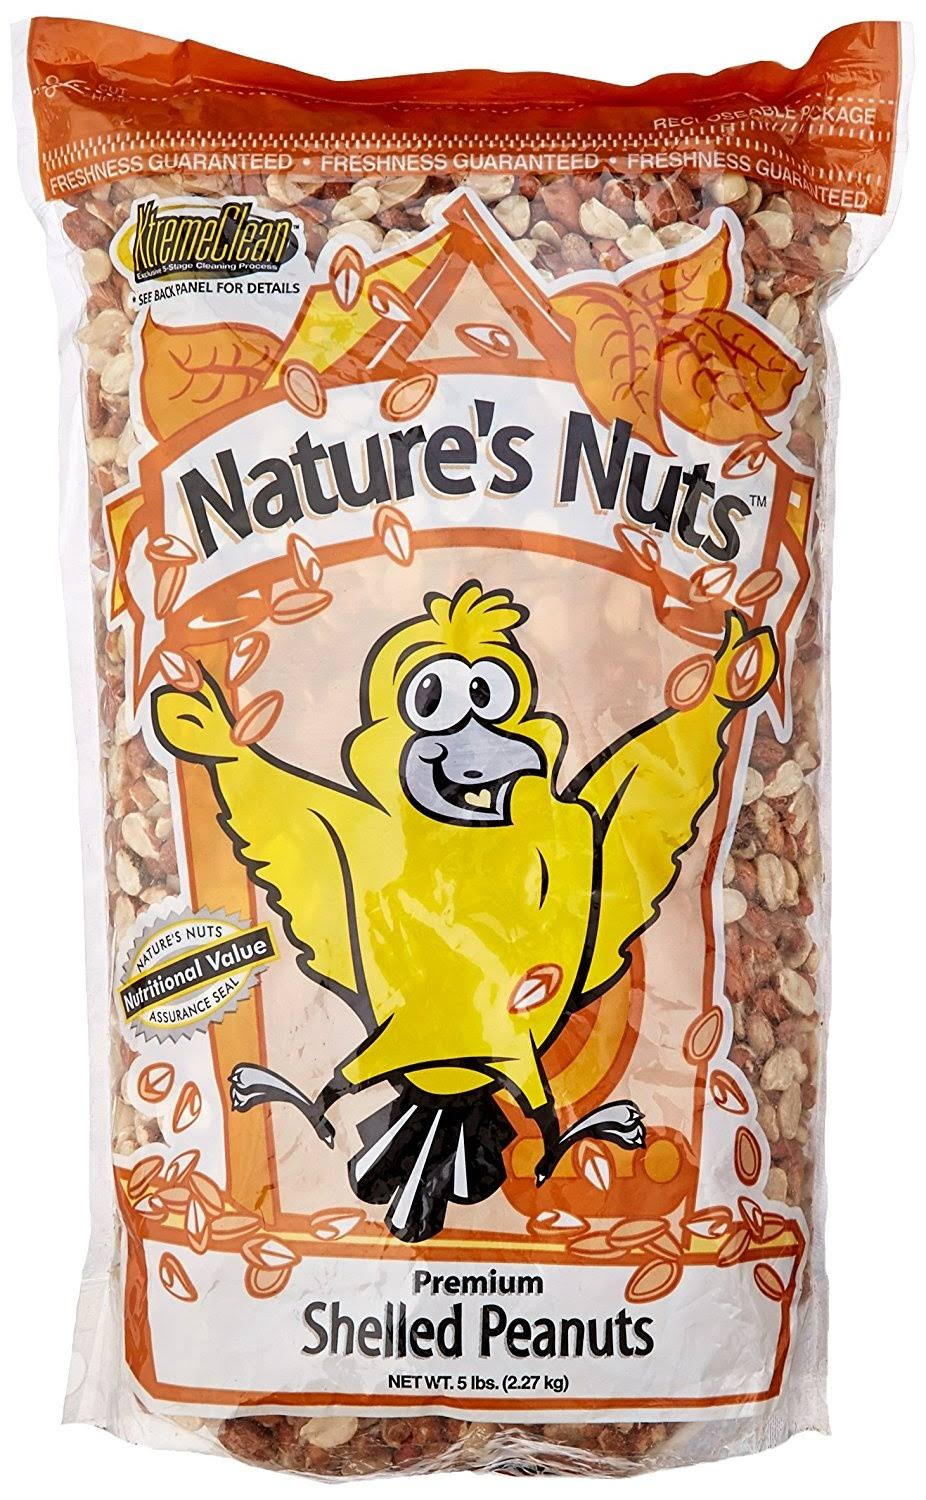 Chuckanut Products 00235 Premium Shelled Peanuts Squirrel Feeders - 5lbs